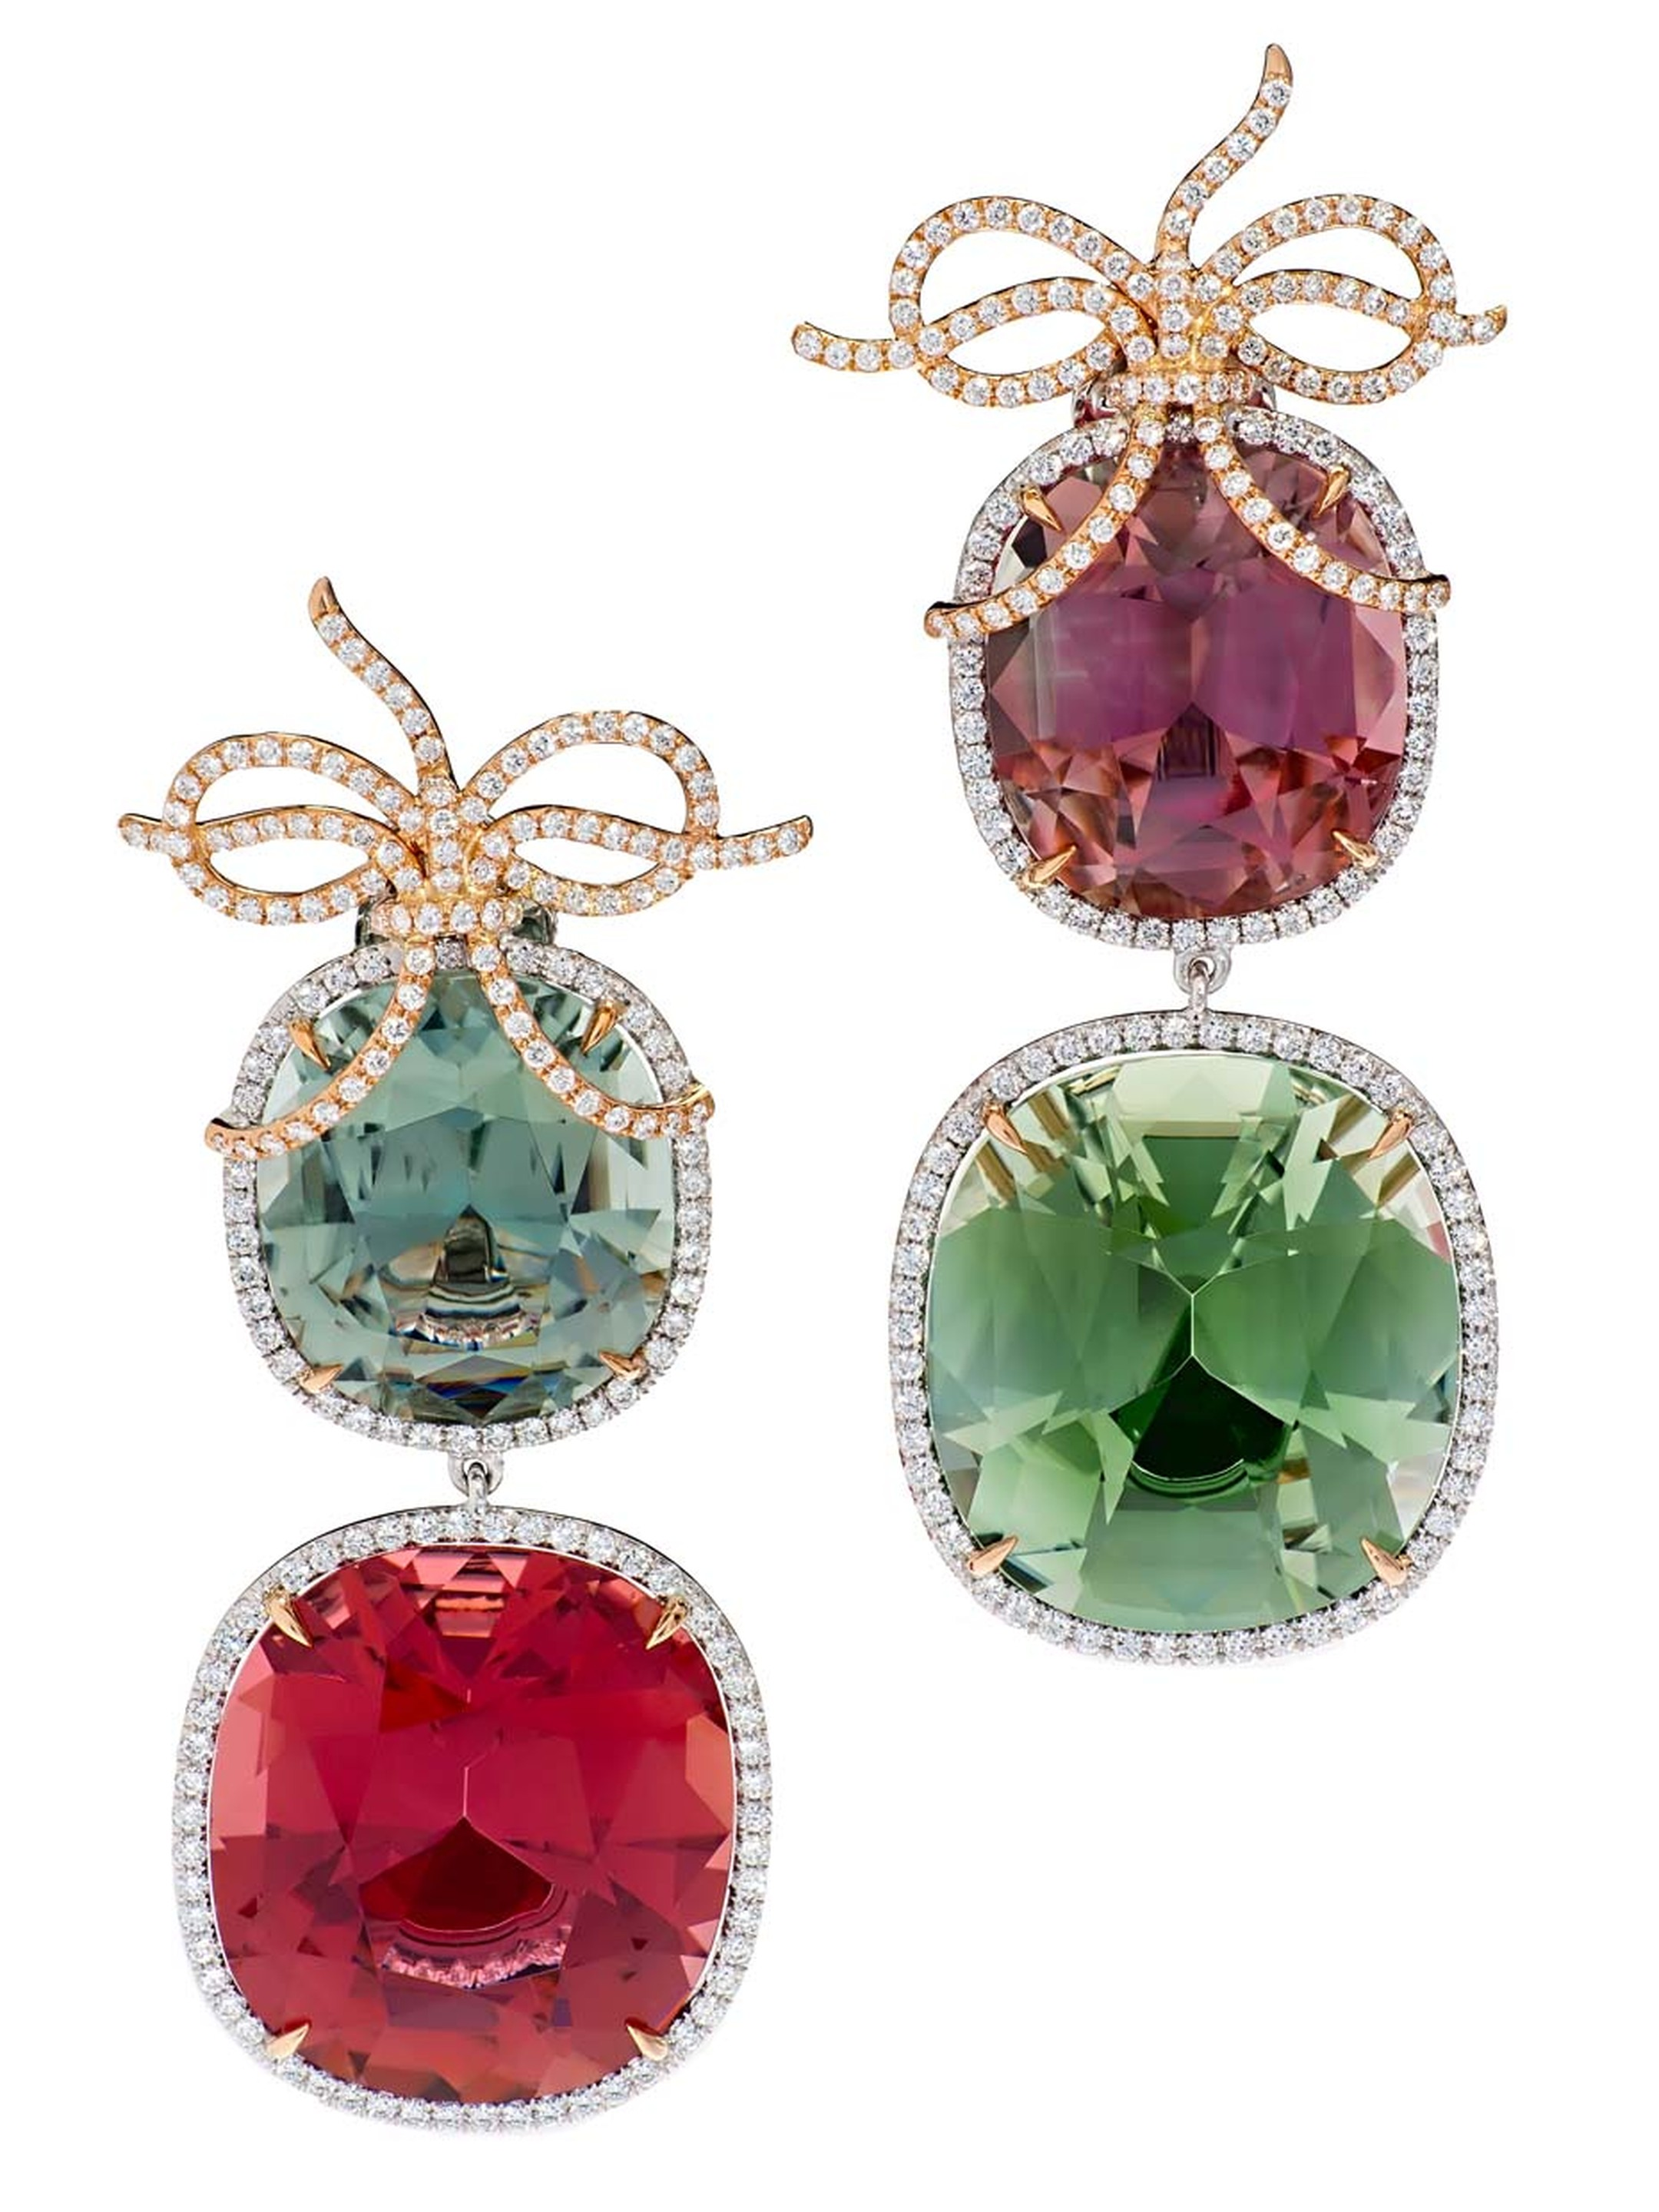 Margot McKinney pink and green tourmaline and diamond Bow earrings.